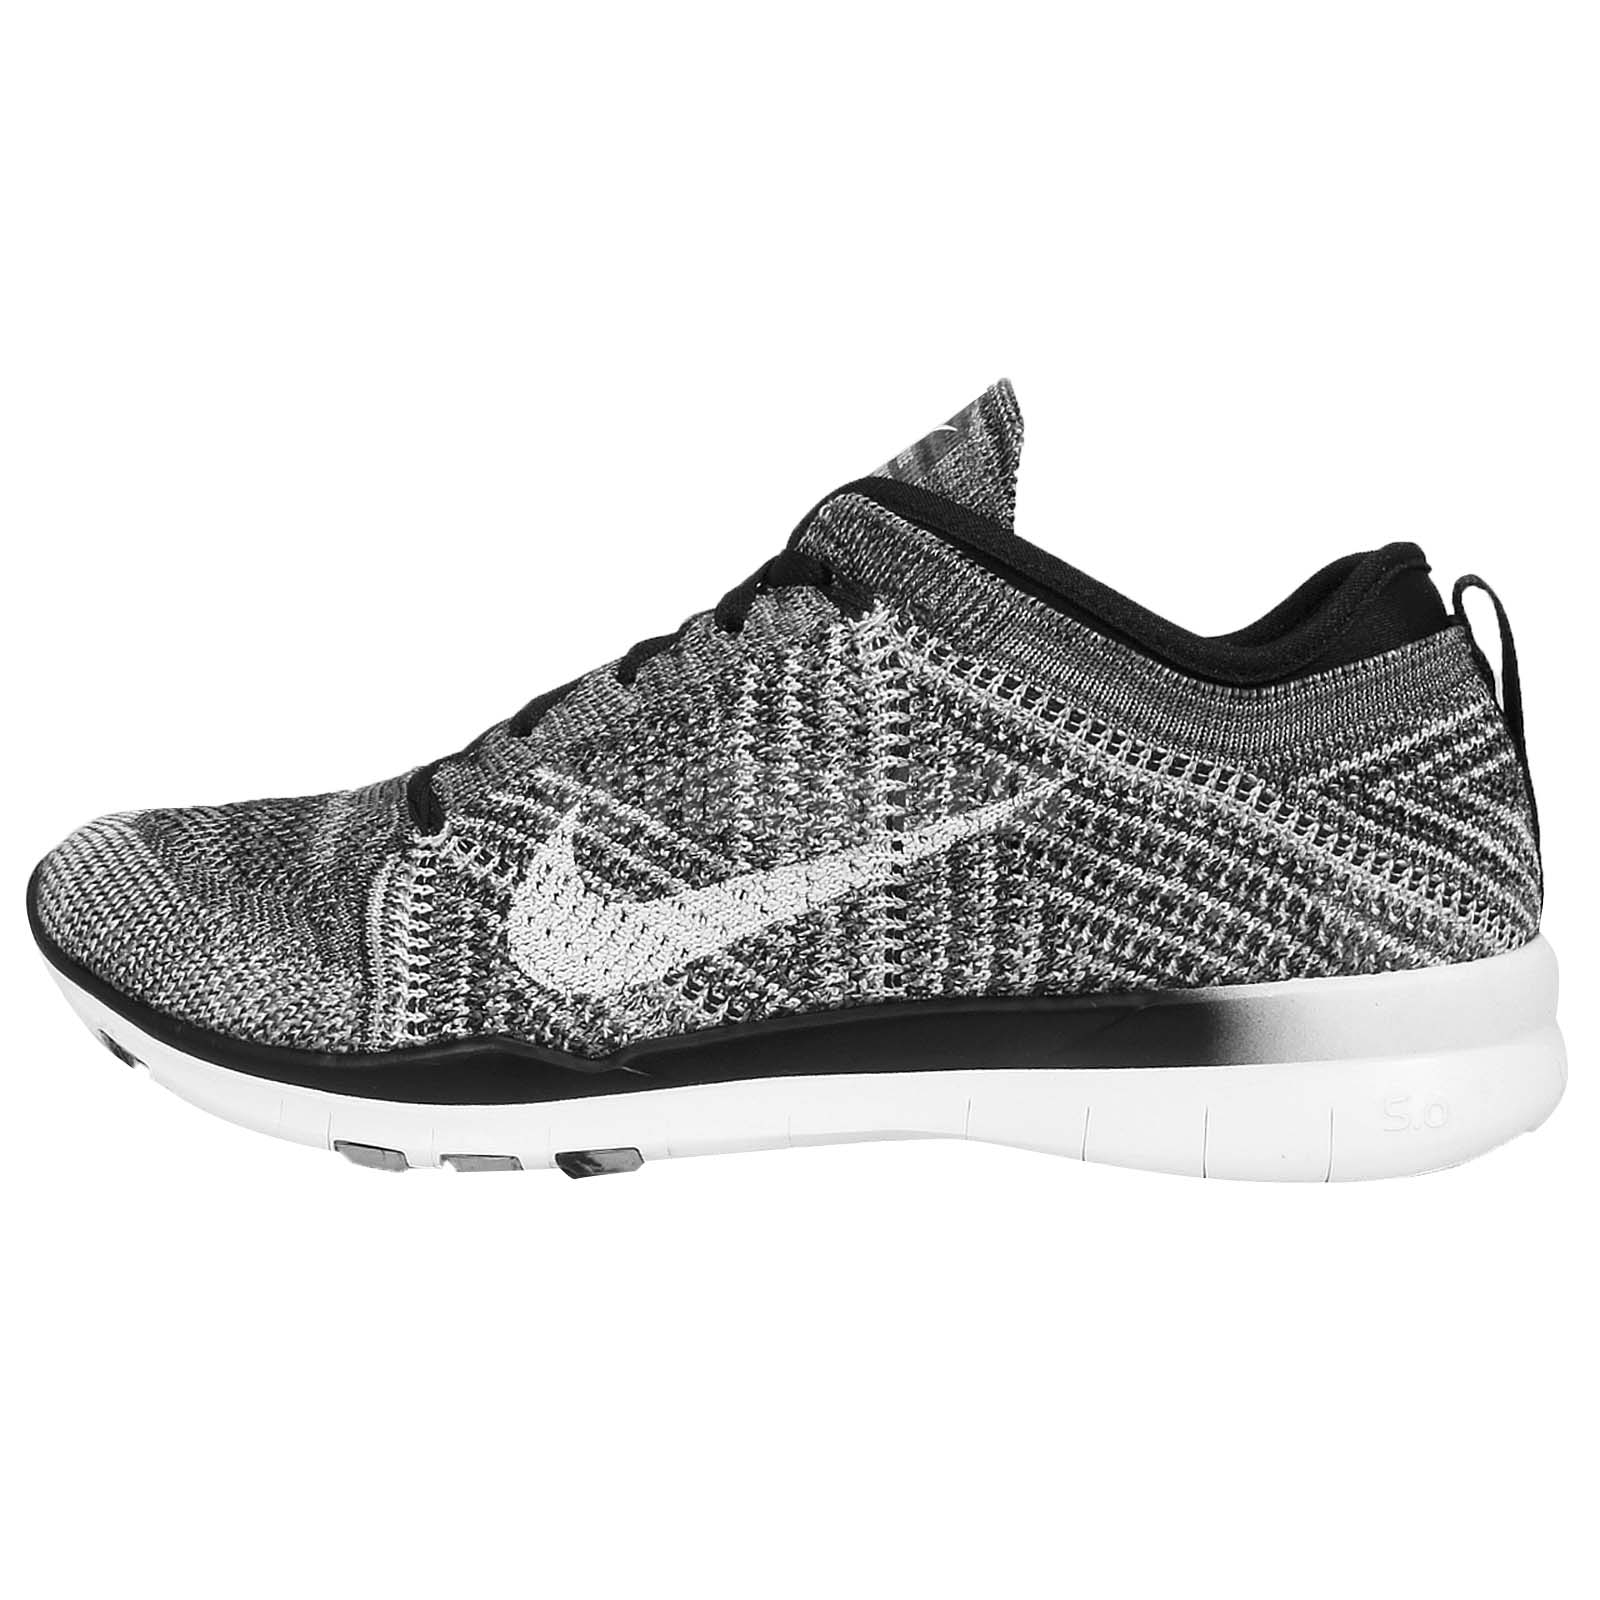 Nike Free Training Shoes Womens